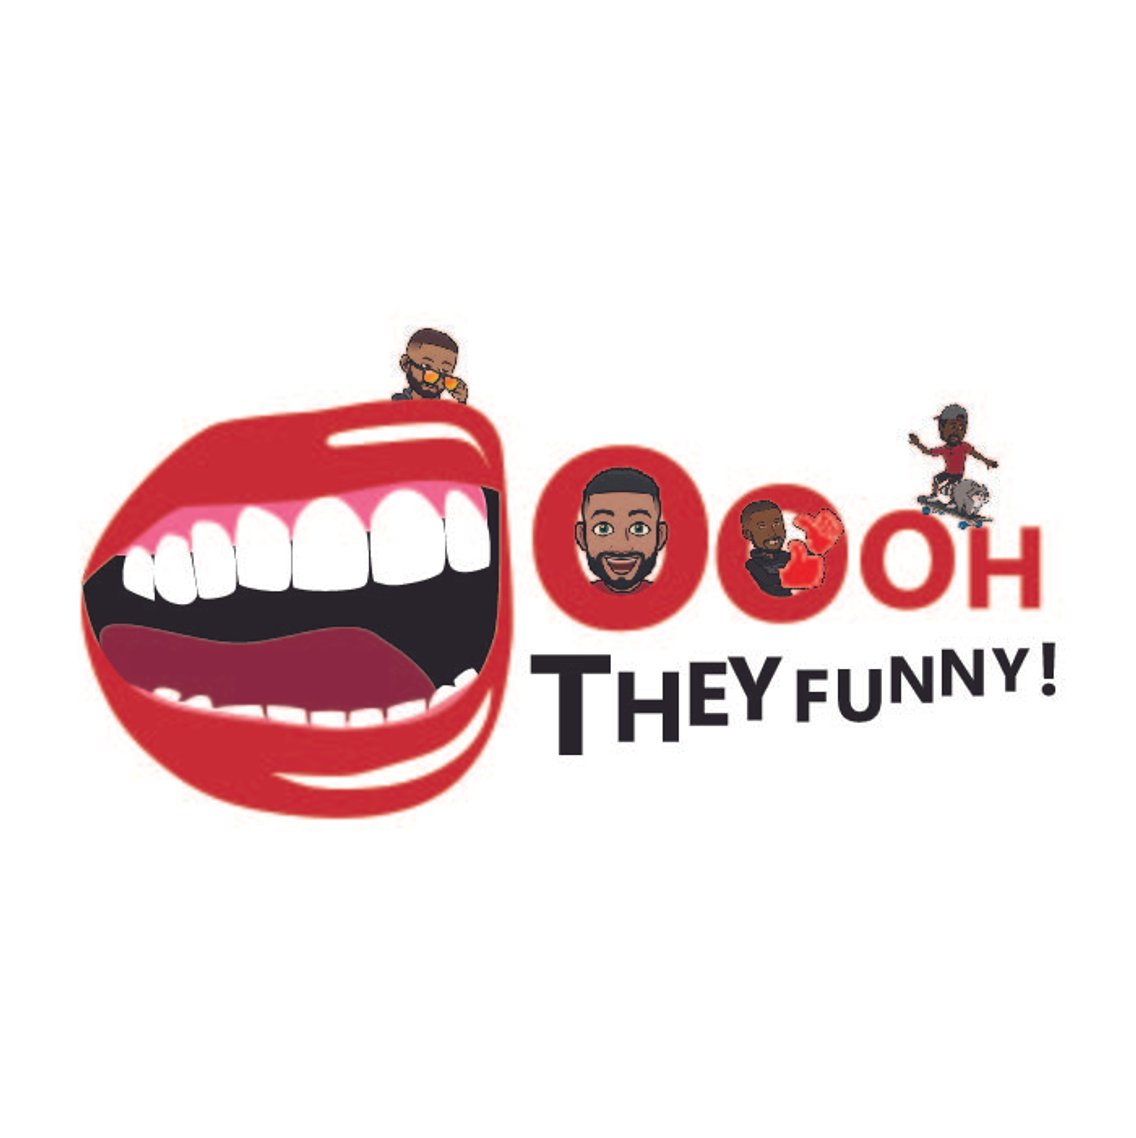 Oooh They Funny (The Show) - Cover Image